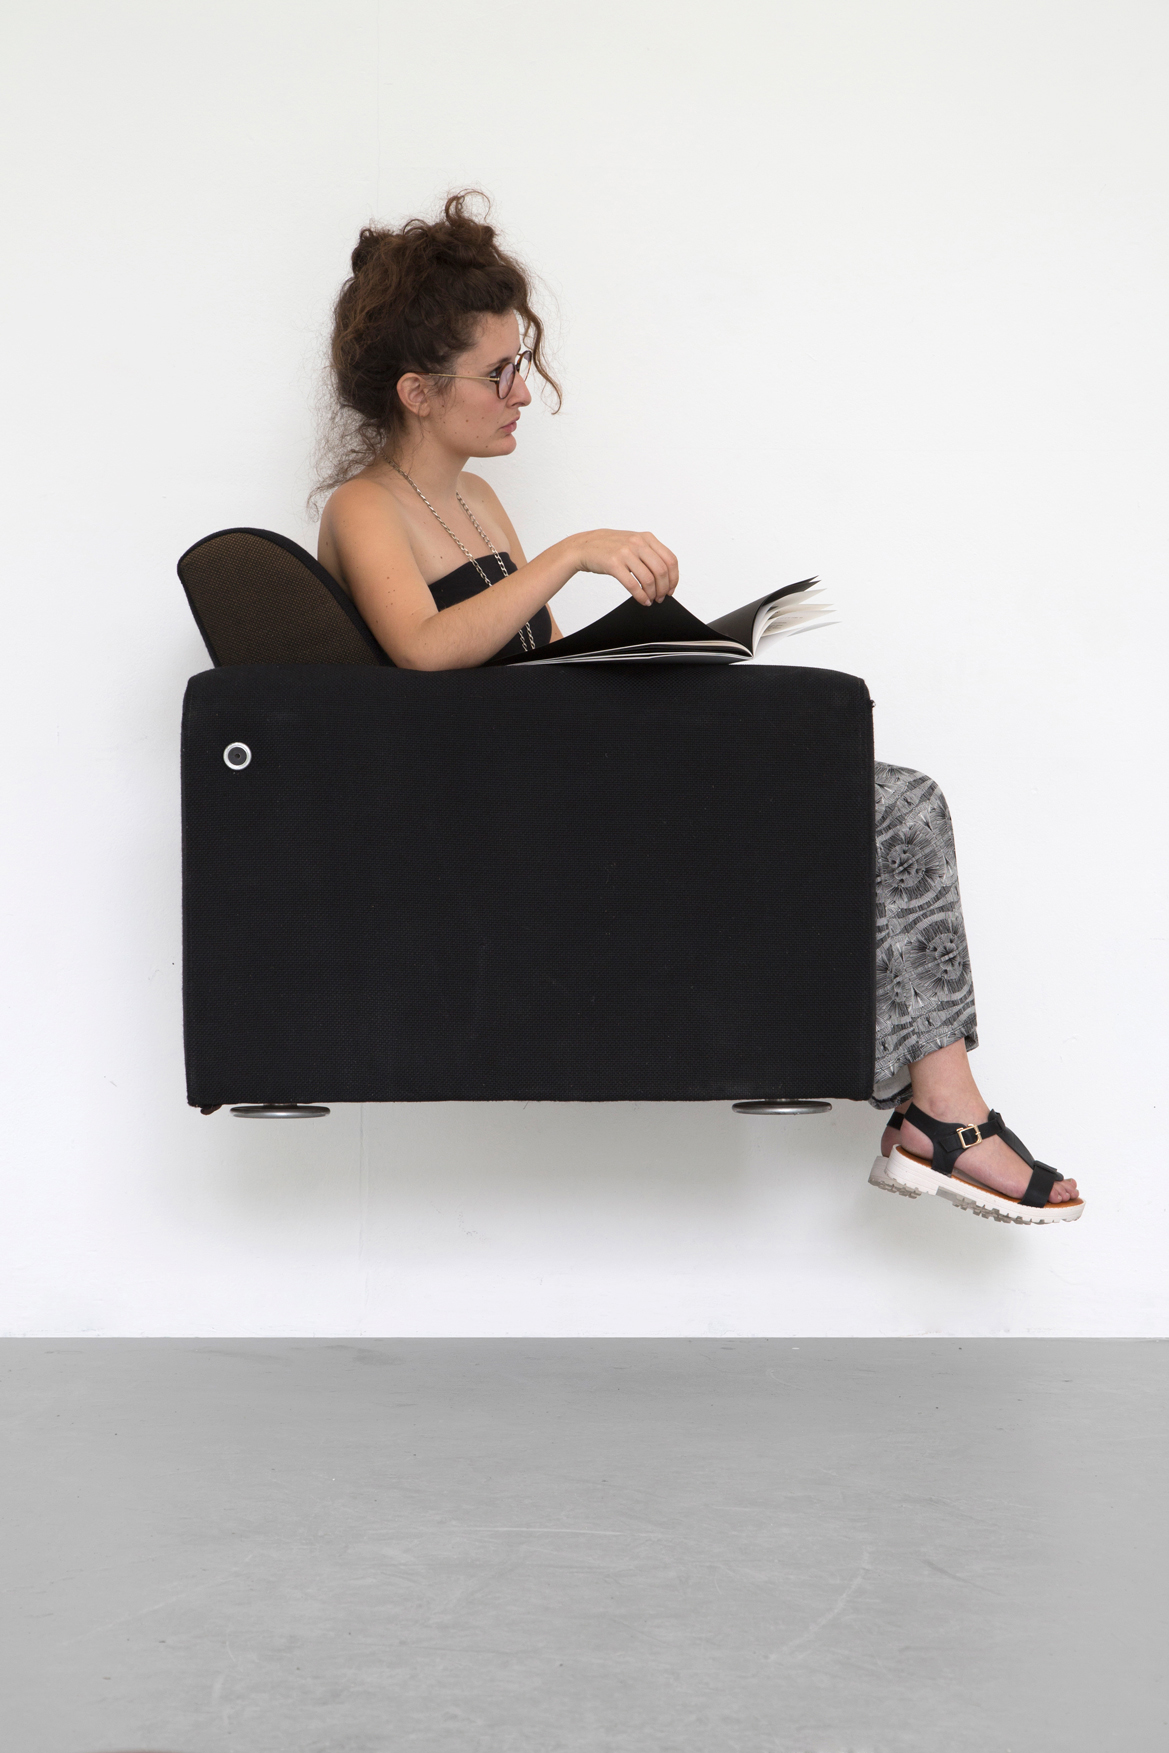 Psychosocial Seating